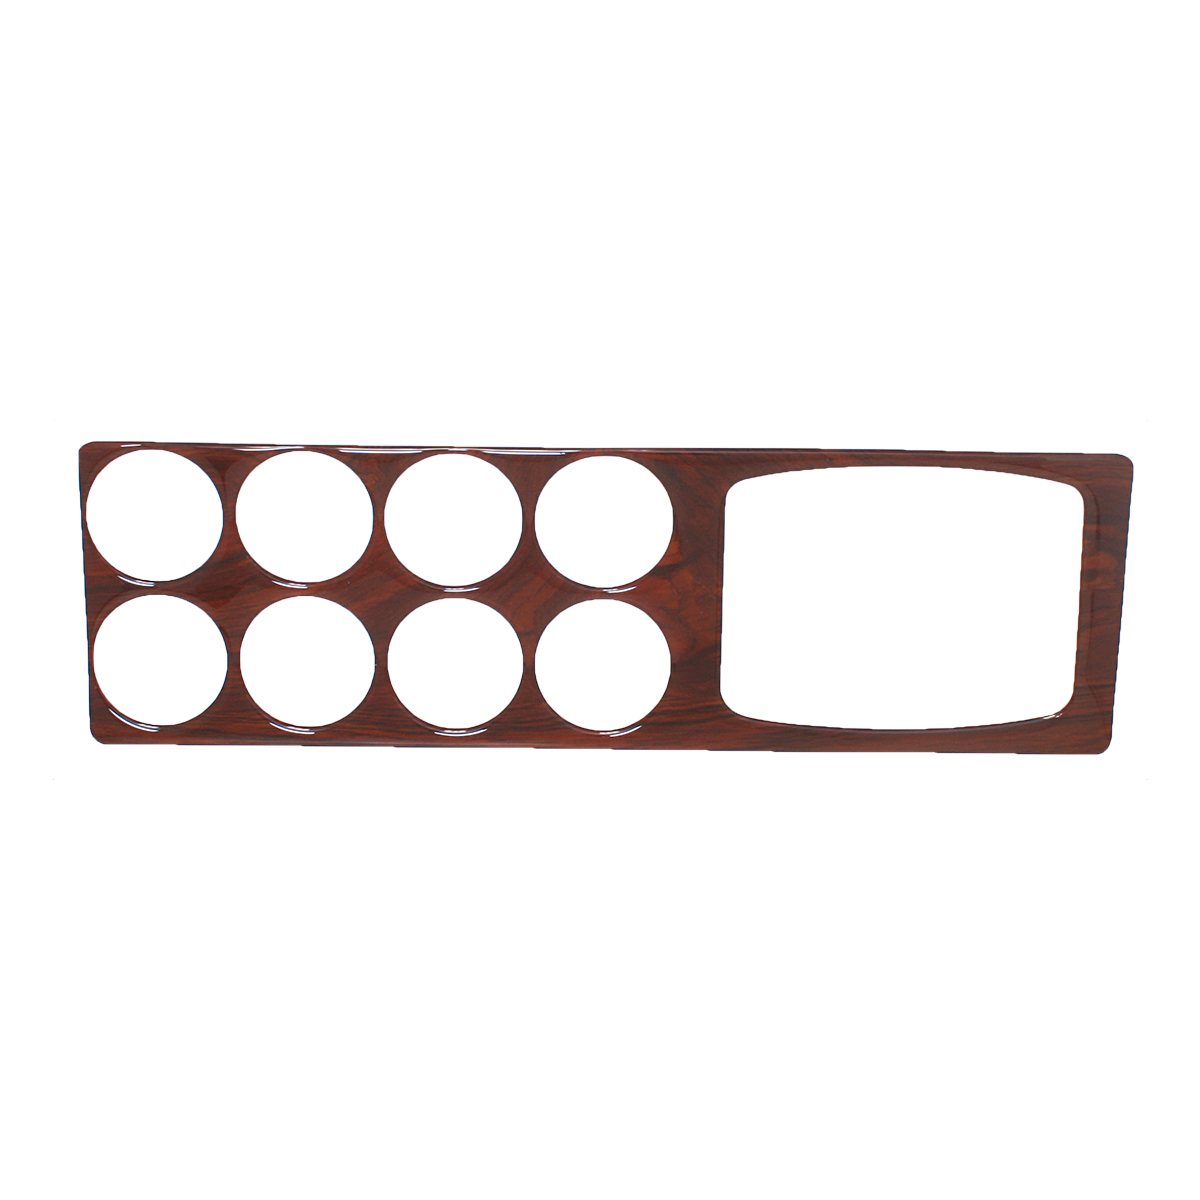 66940 Gauge Trim with Navigation for Kenworth W & T